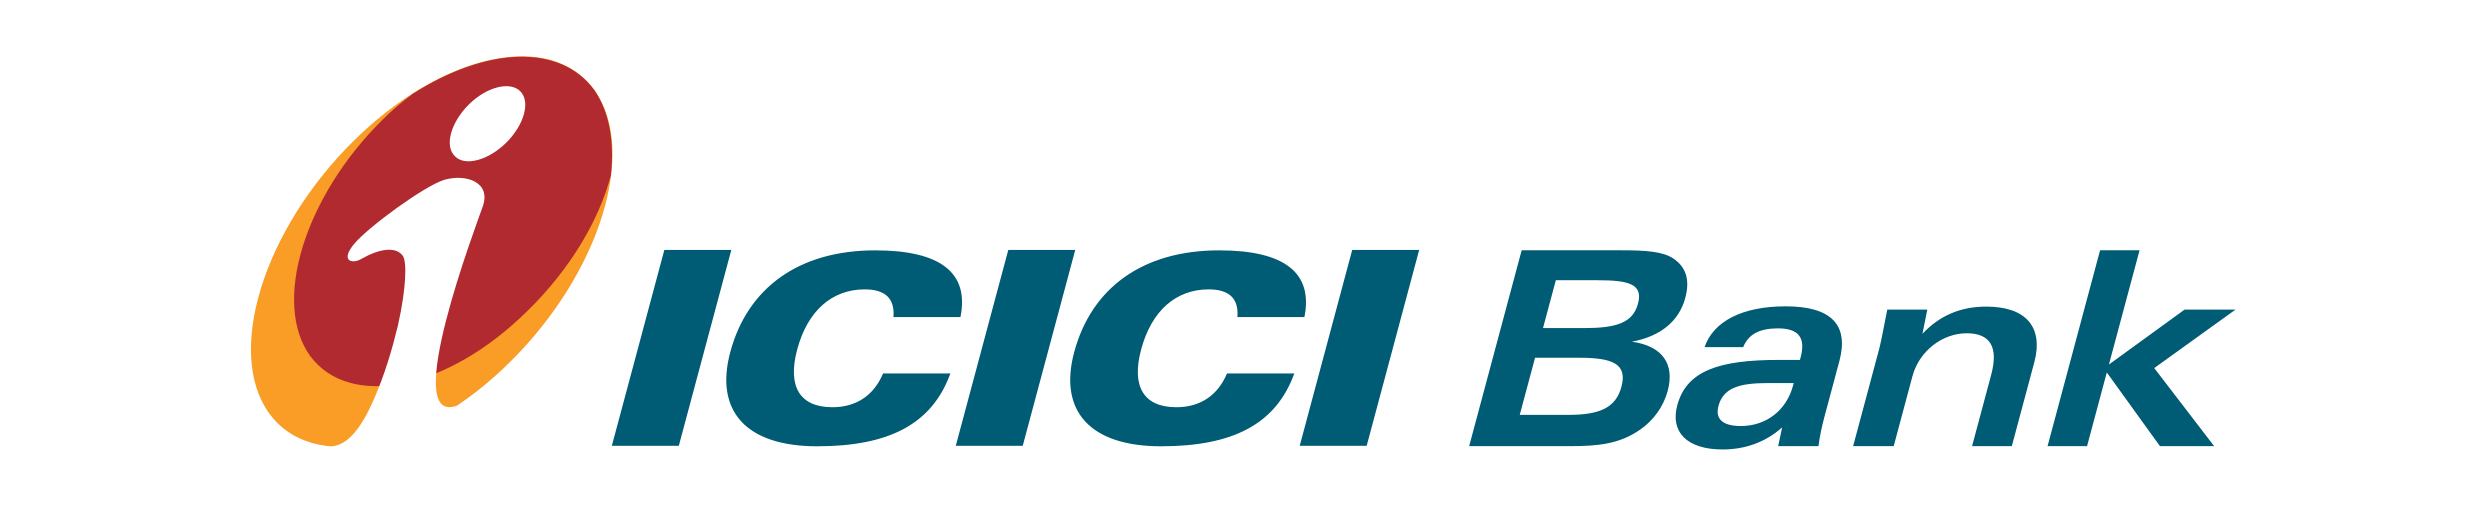 Get ICICI Bank latest Yearly Results, Financial Statements and ICICI Bank detailed profit and loss accounts.